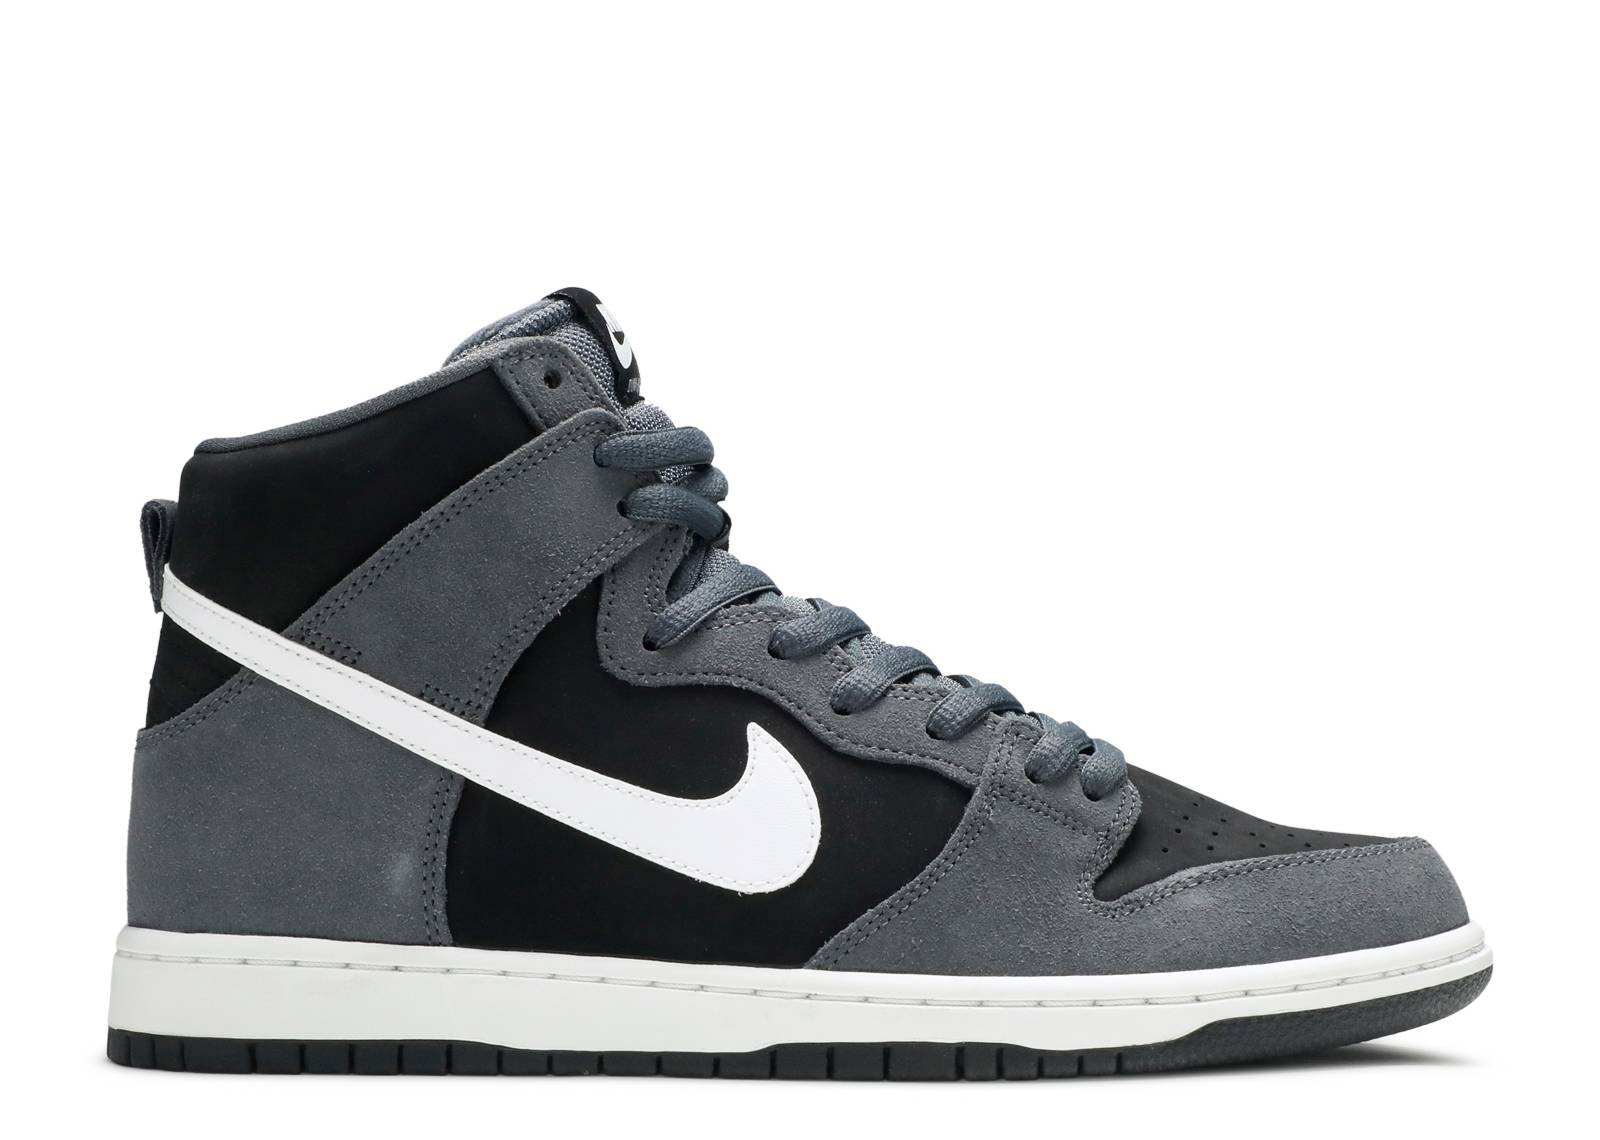 a92eb7097ce5 nike. nike sb zoom dunk high ...